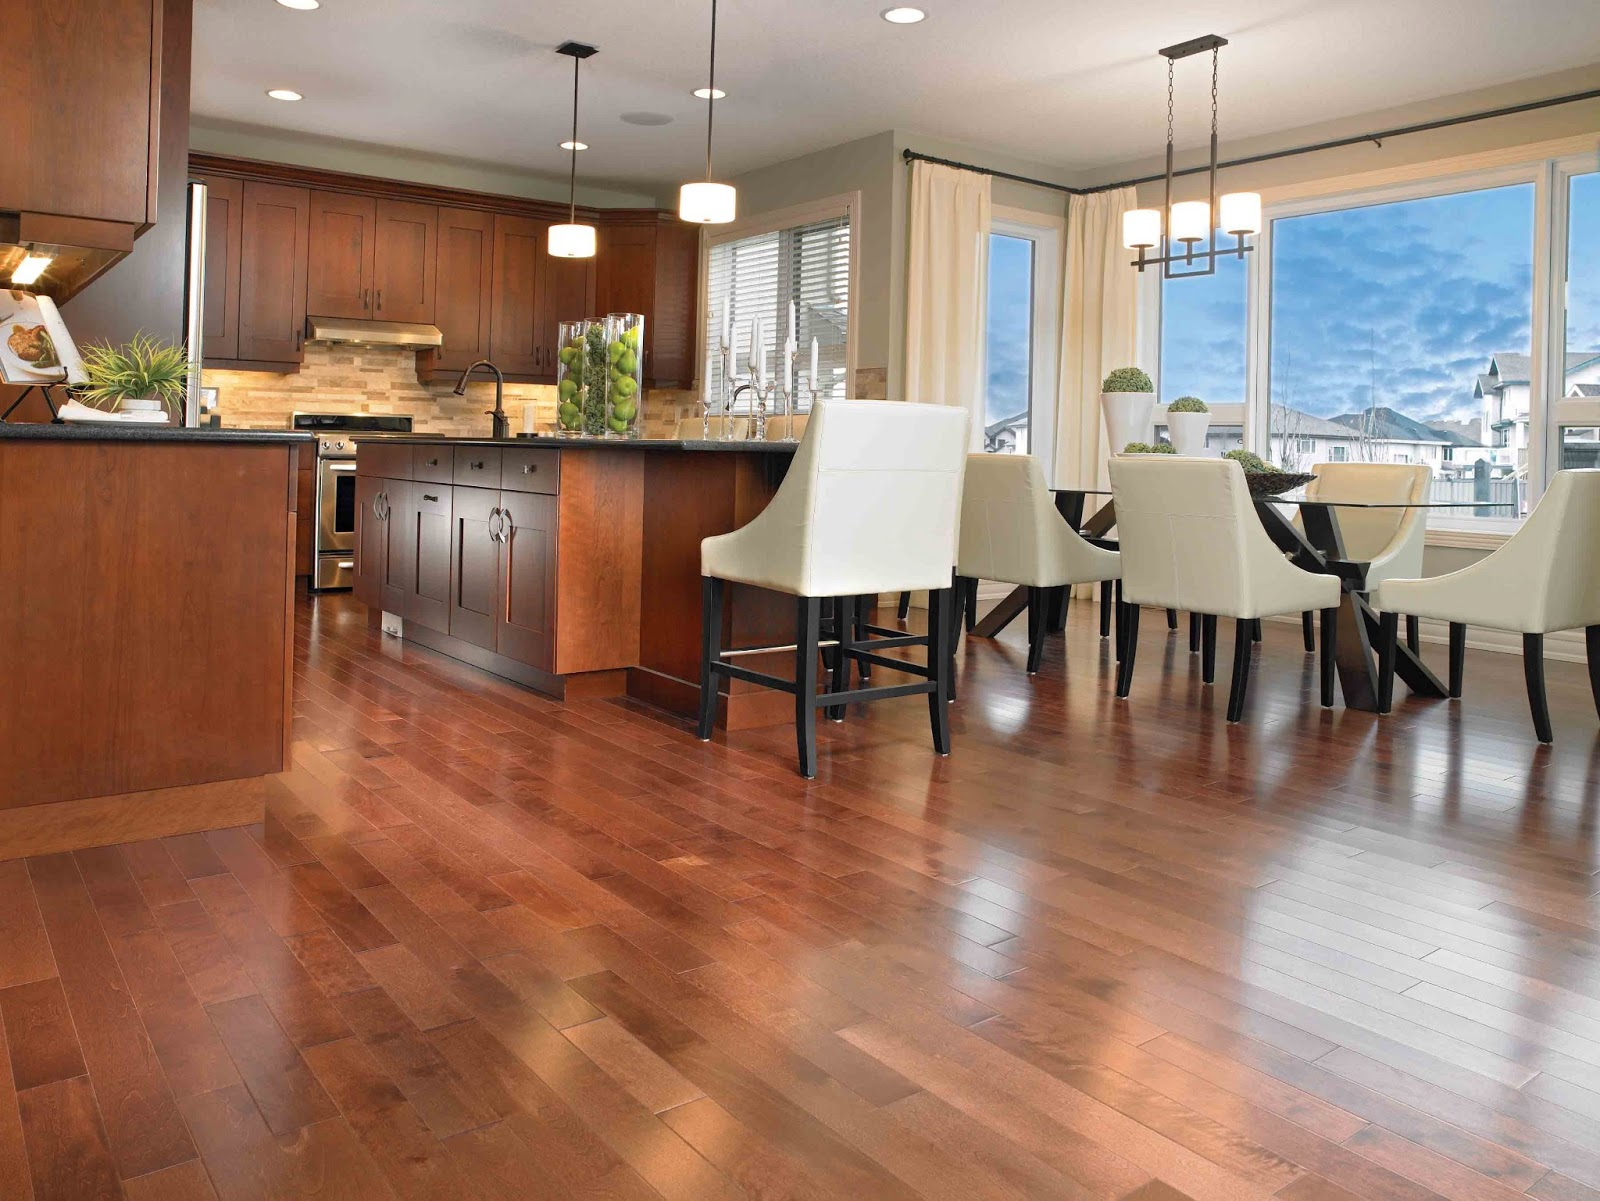 Floor Coverings For Kitchen The Leader In The Field Of Floor Coverings A Name Synonymous